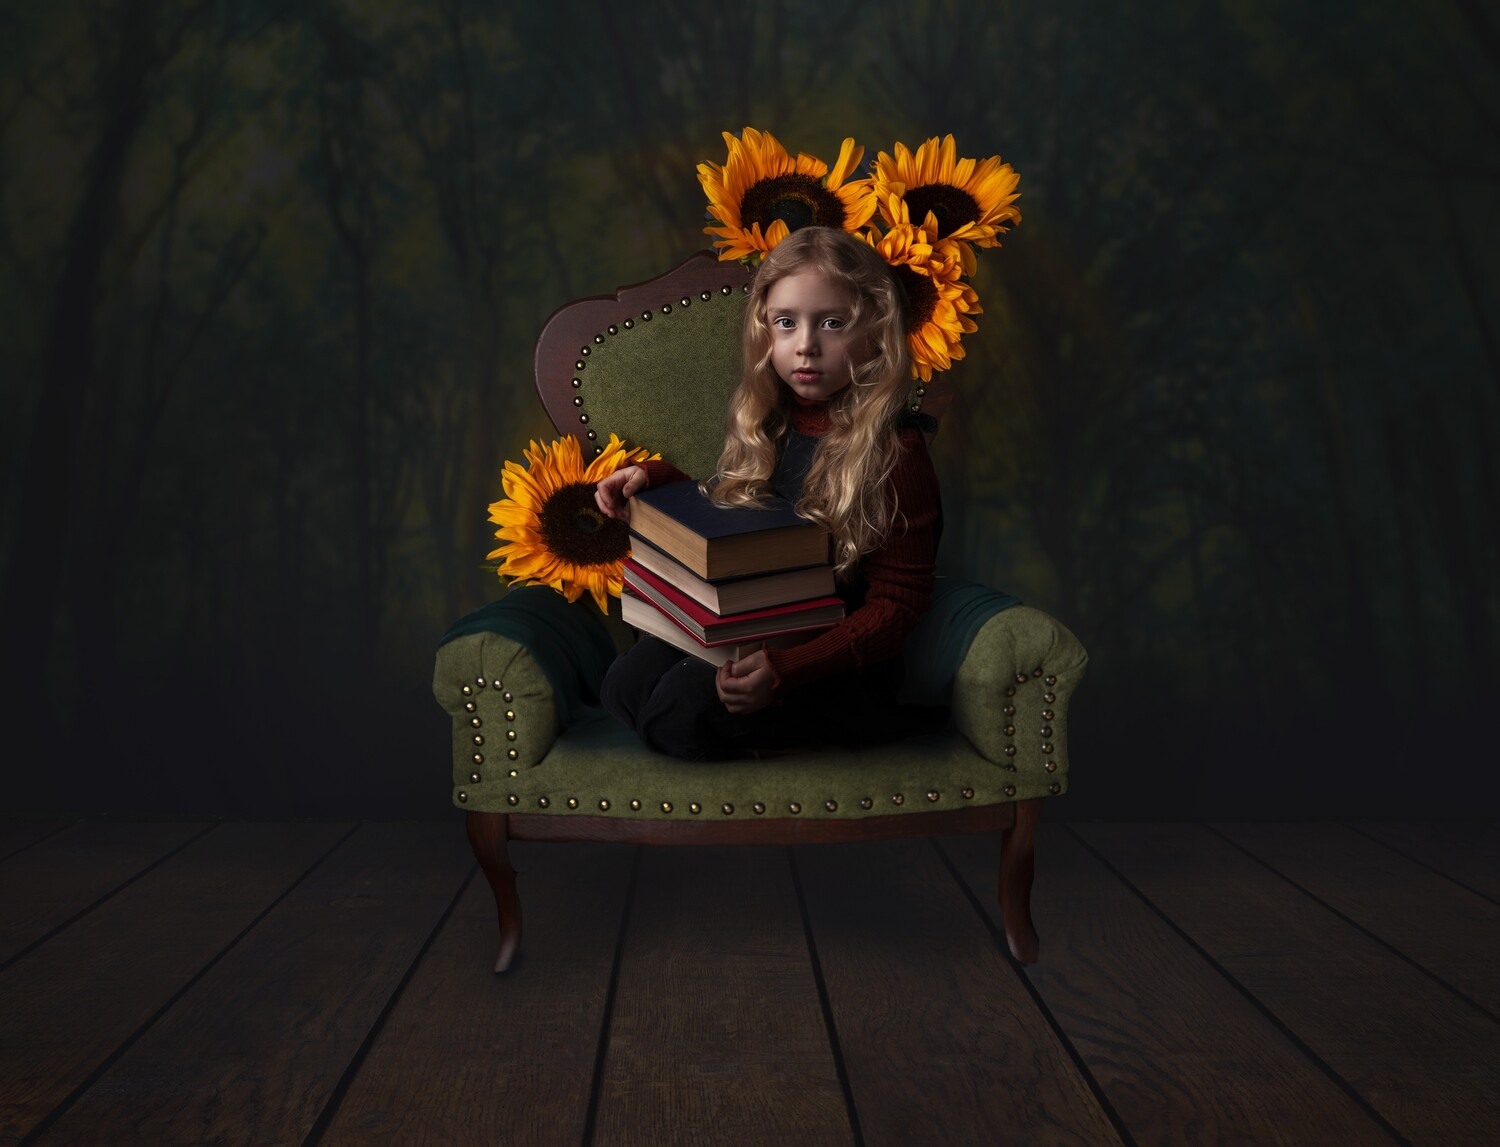 Brown Regal High backed chair, painterly style with candle and books Digital Background